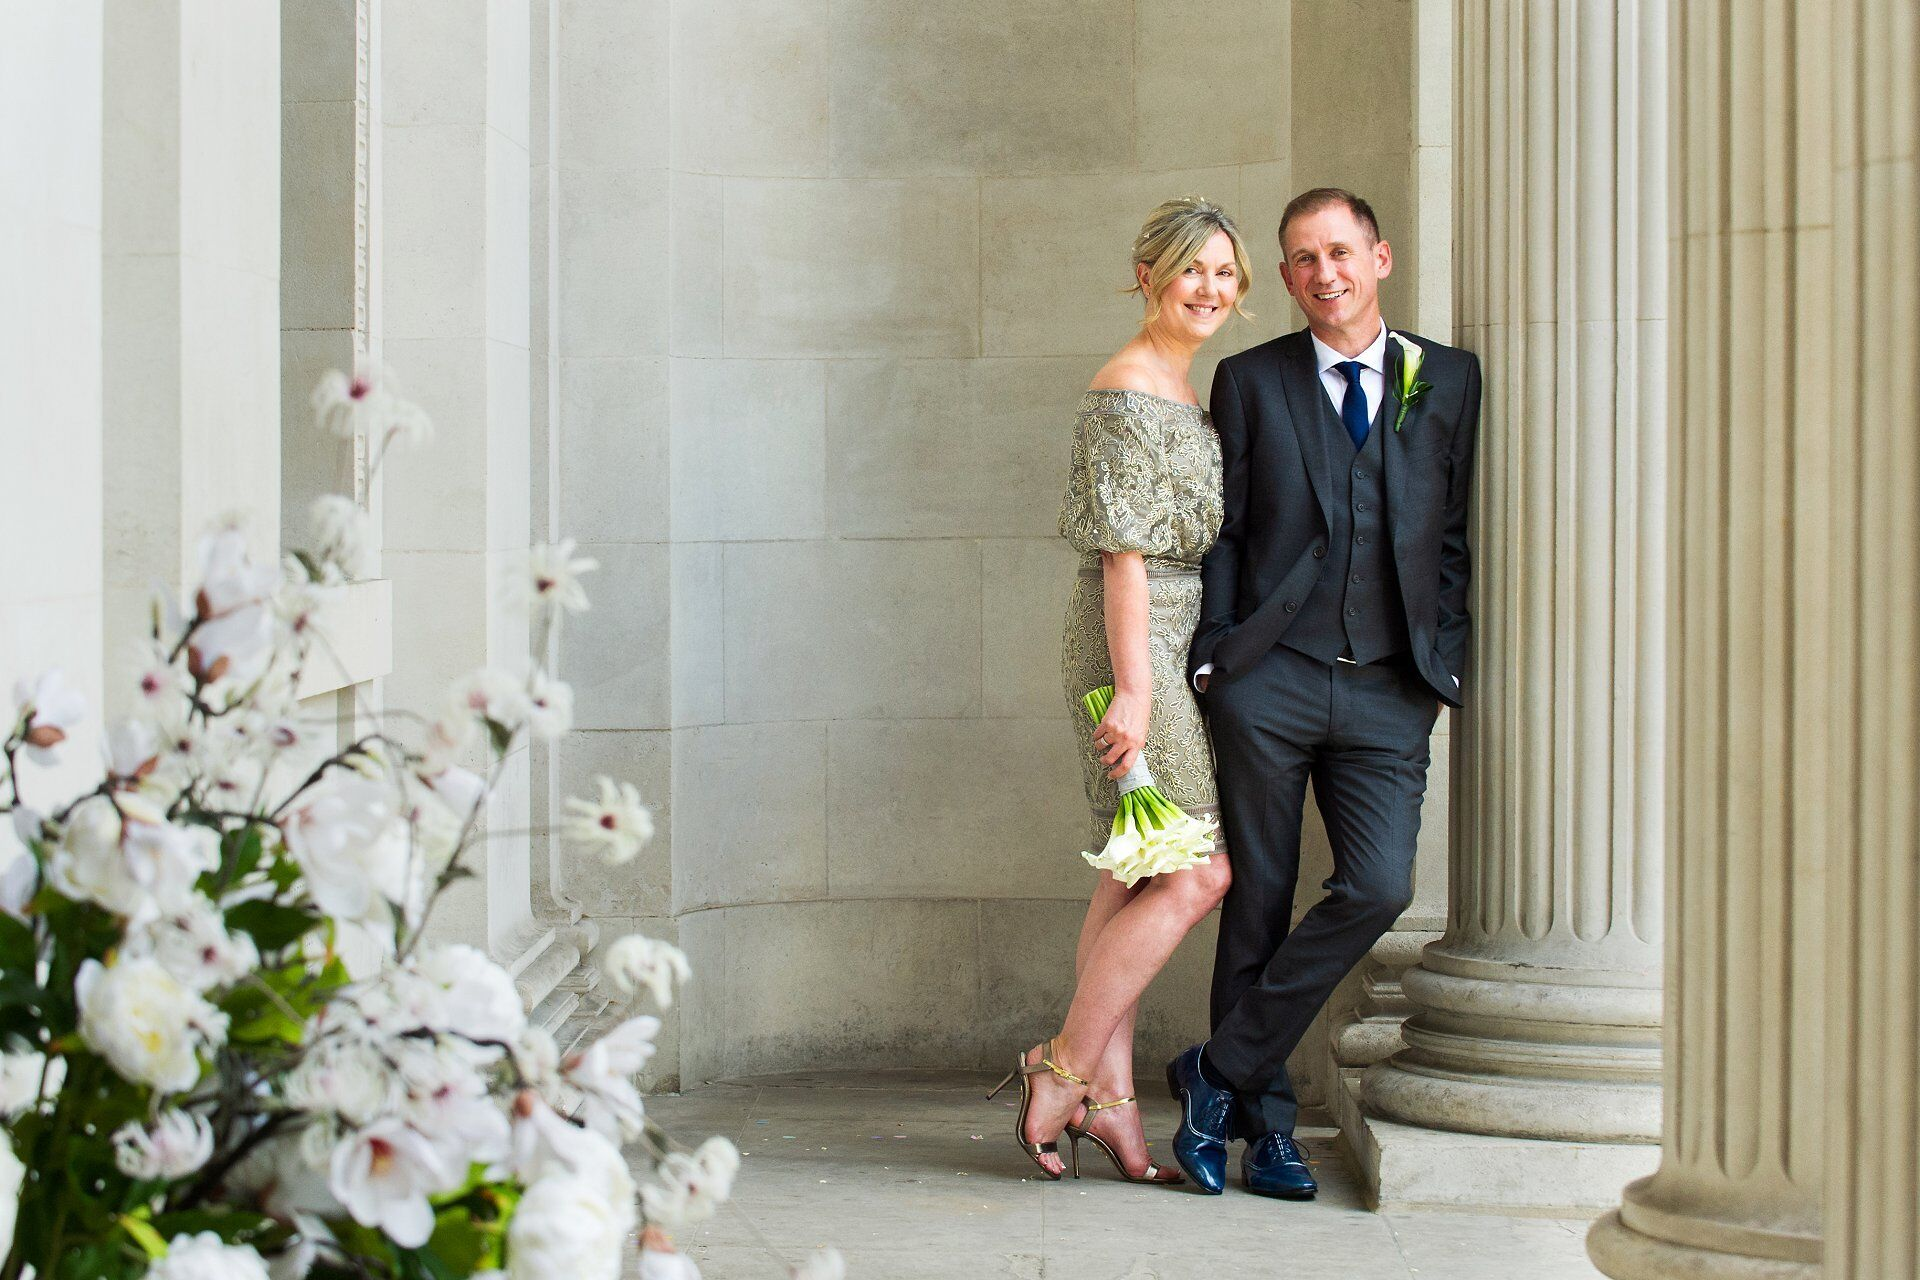 old marylebone town hall wedding photography by a professional covering over 100 weddings at this iconic london venue brenda and michael underneath the fluted columns